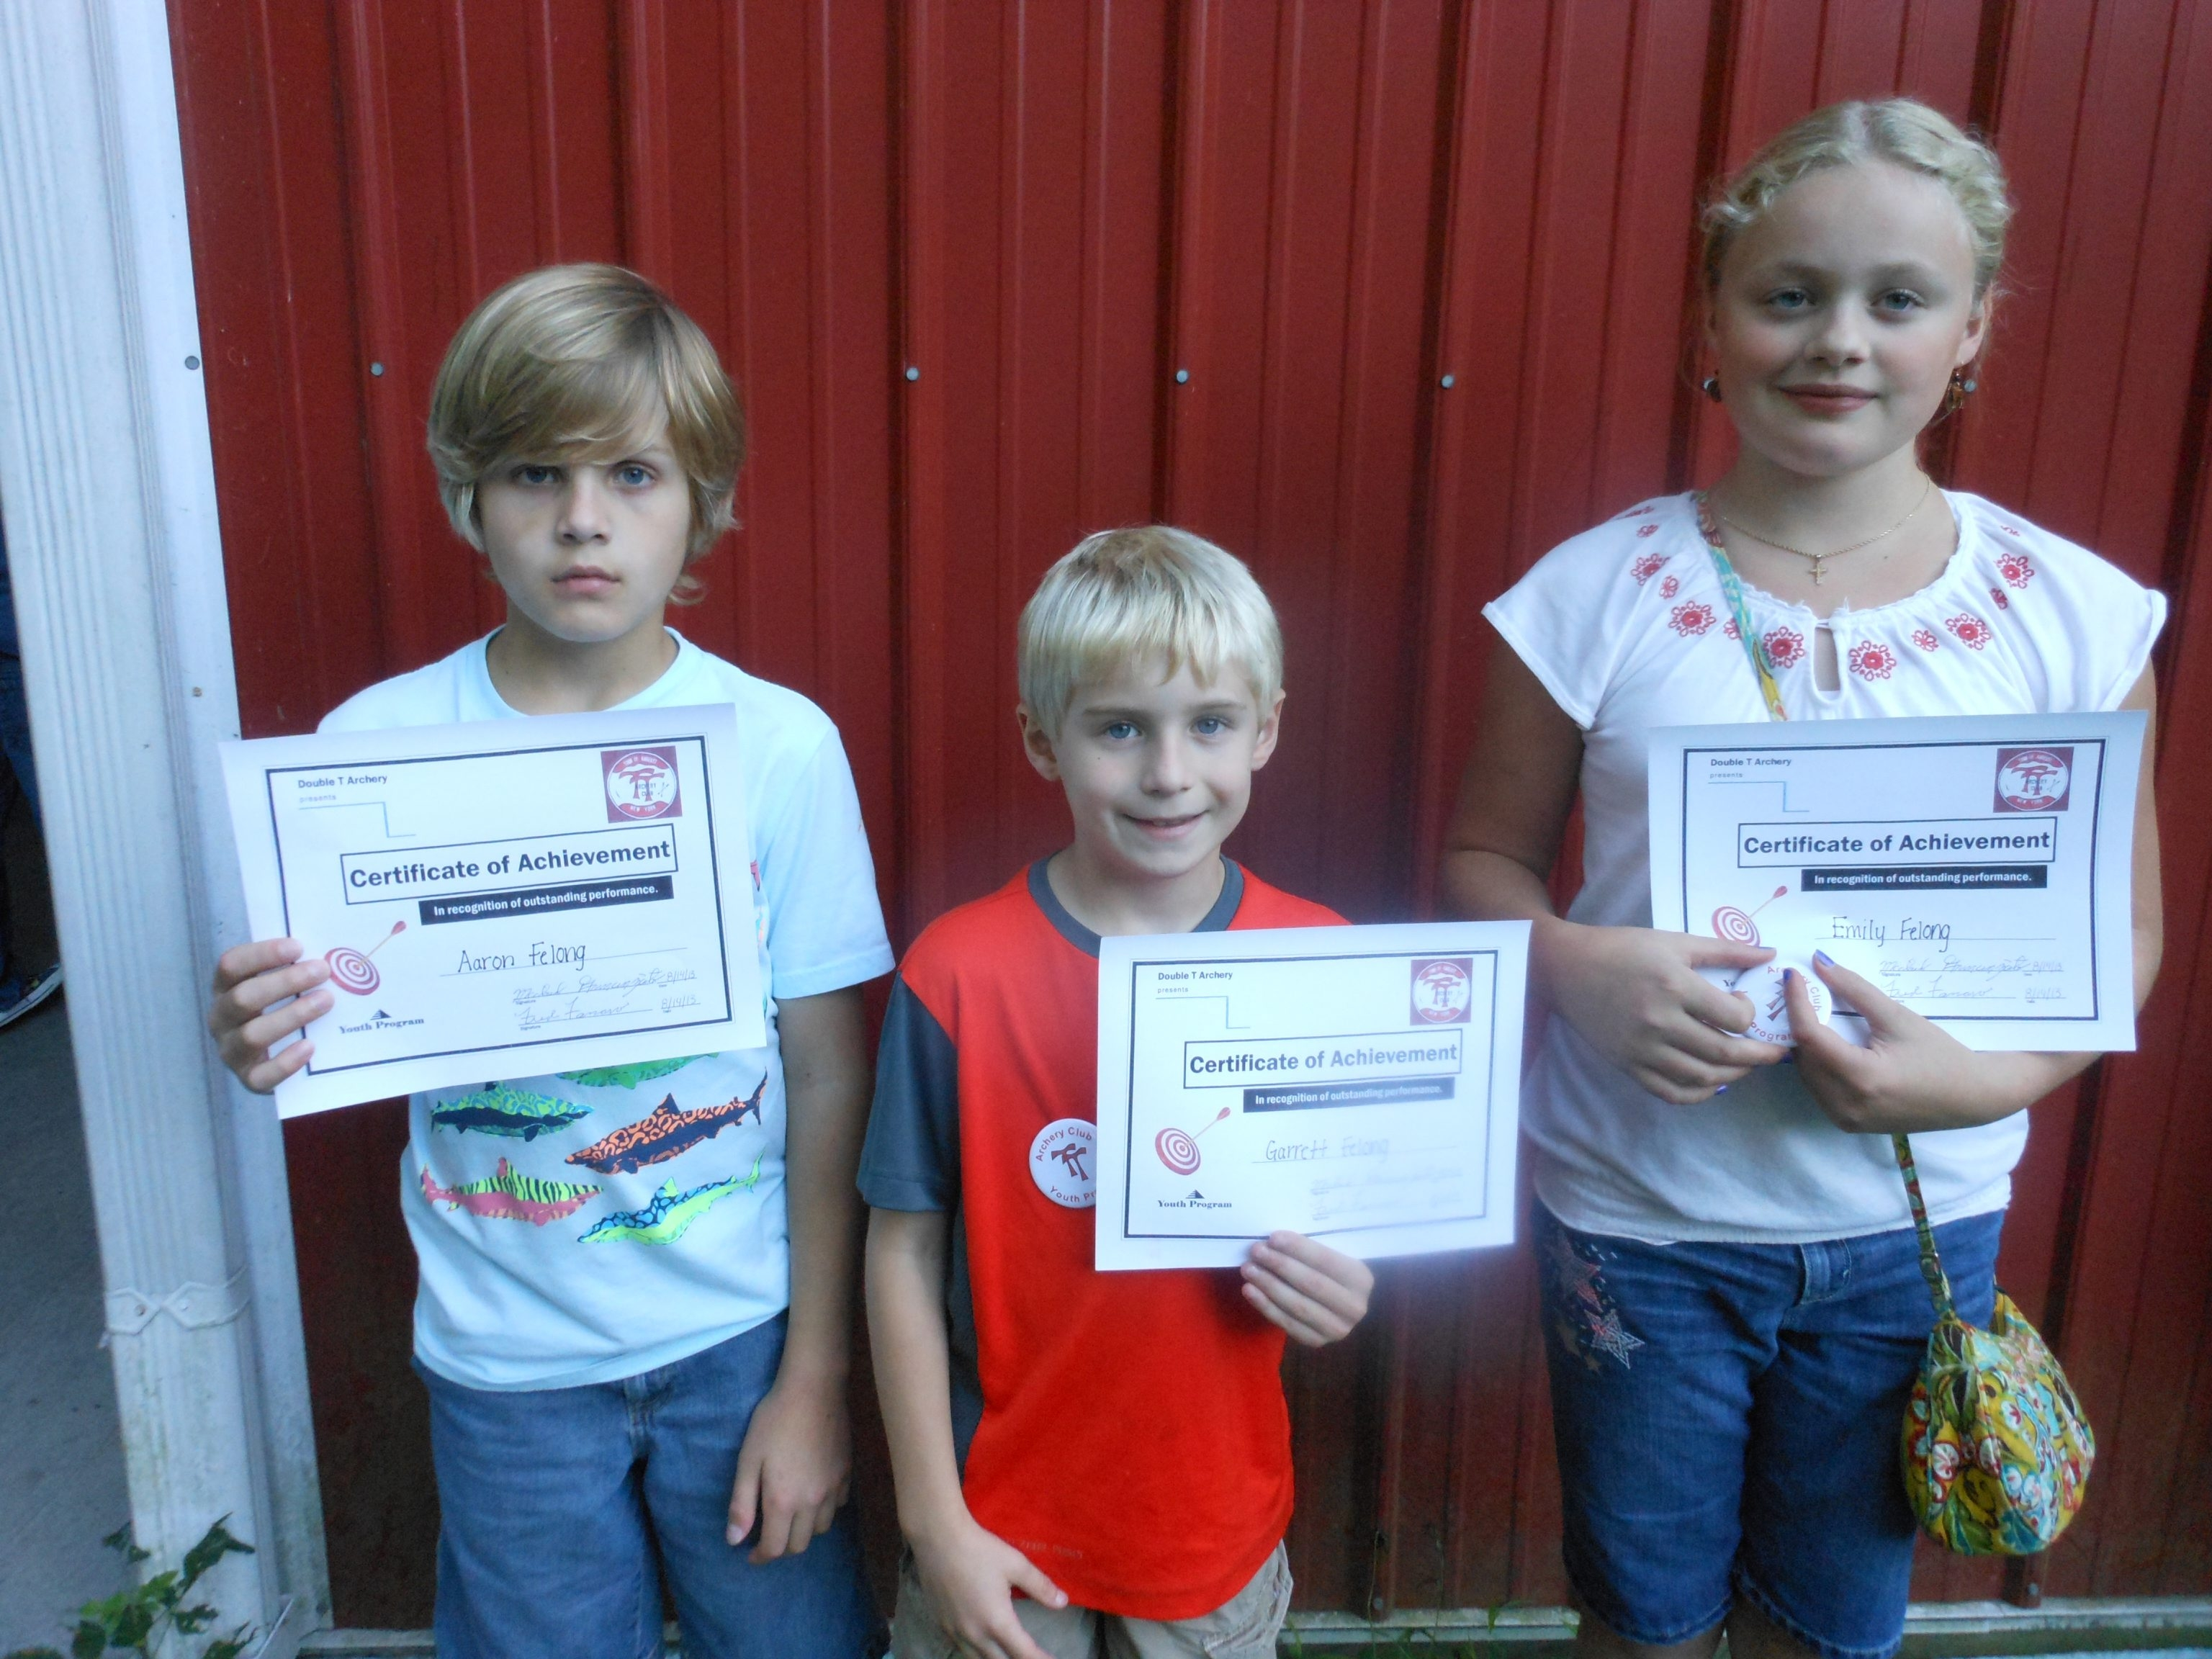 The Felong family, Aaron, Garrett, and Emily, accepted awards during a Double T Archery gathering in Amherst on August 14.